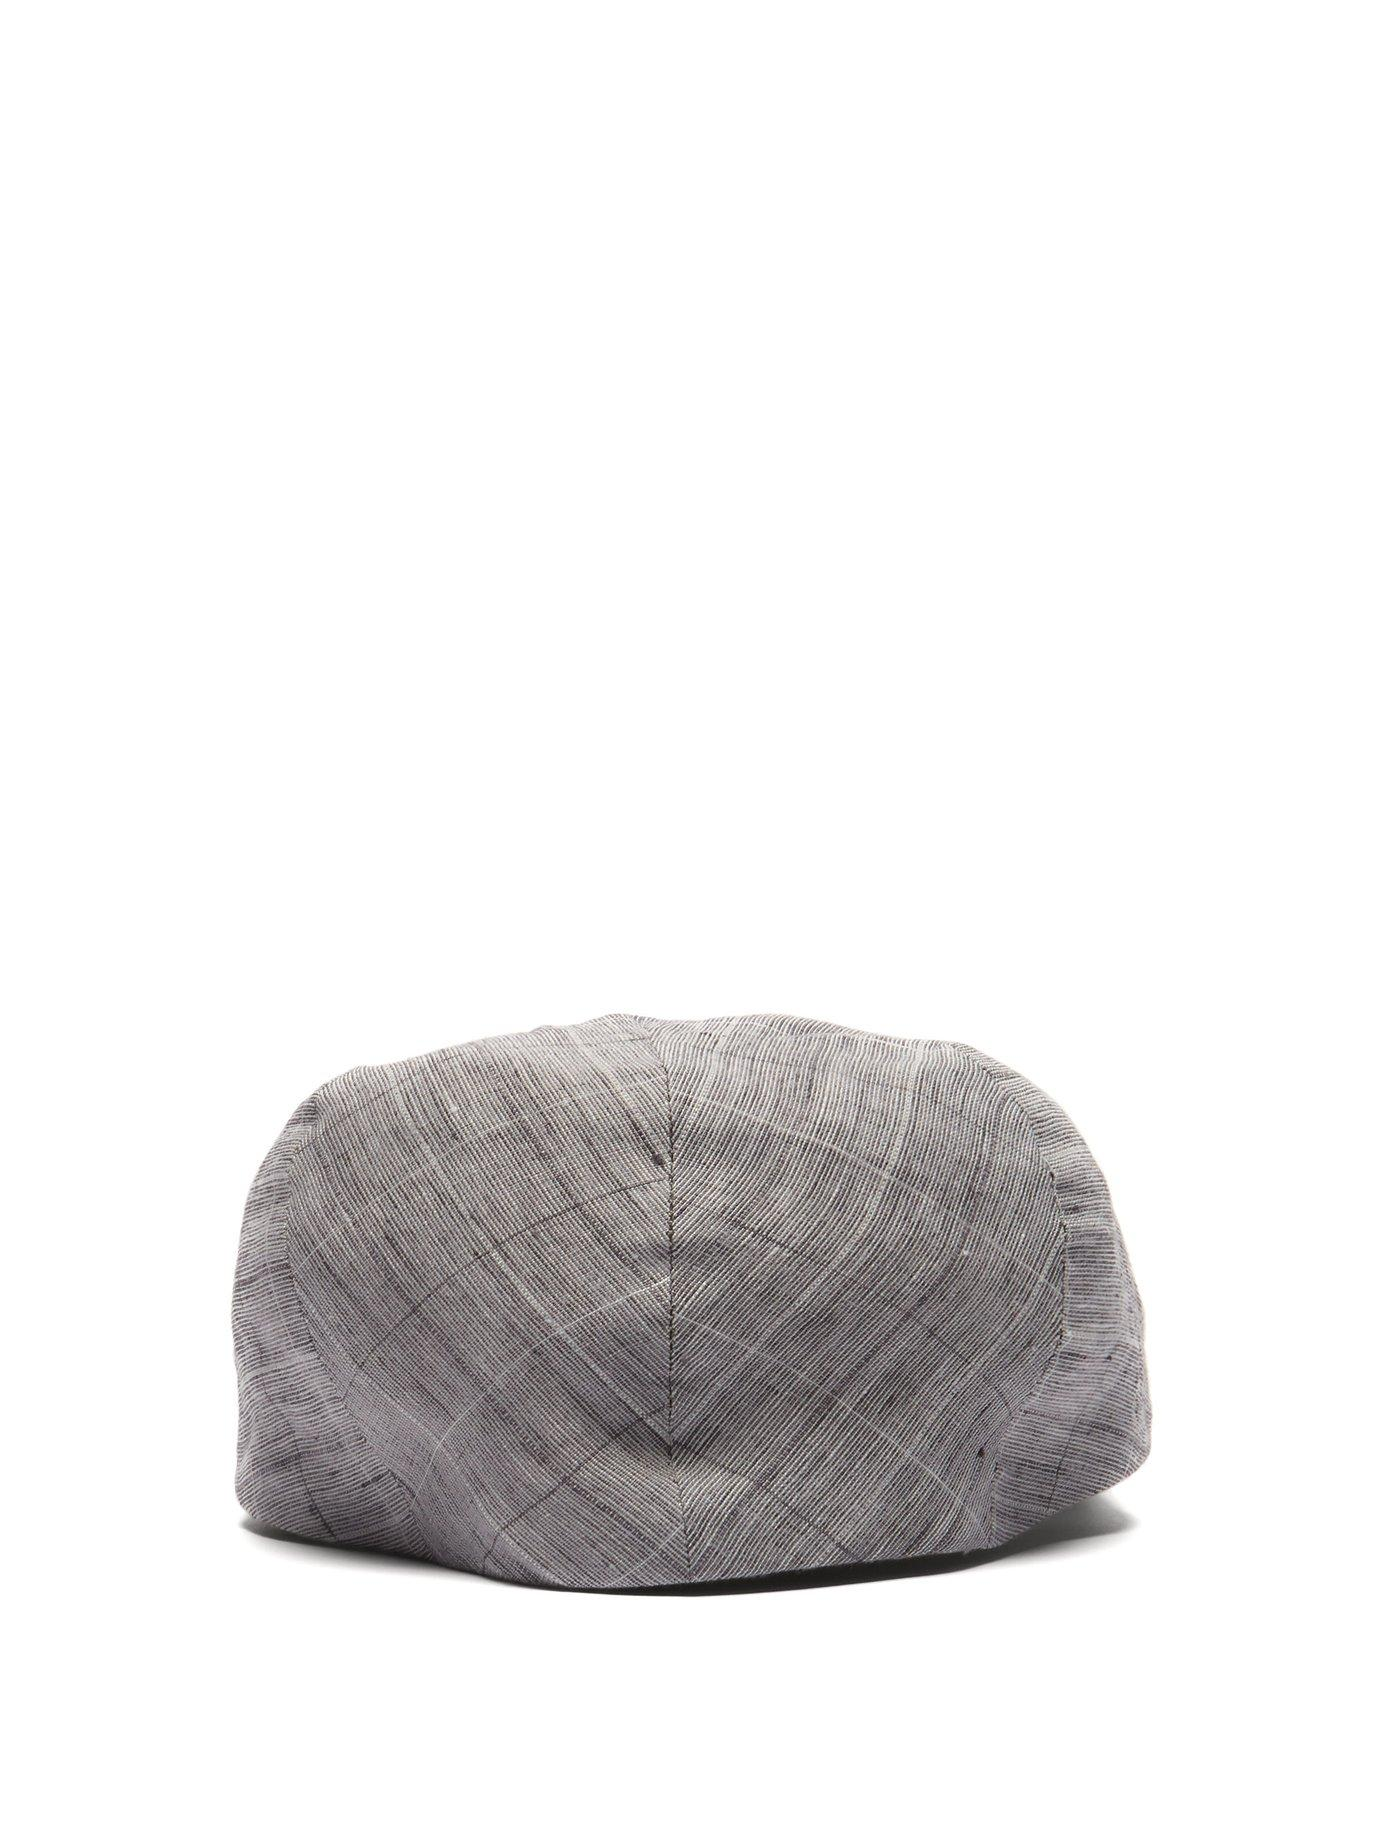 5f894b47a1d Lyst - Lock   Co. Drifter Graph Checked Slubbed Linen Flat Cap in Gray for  Men